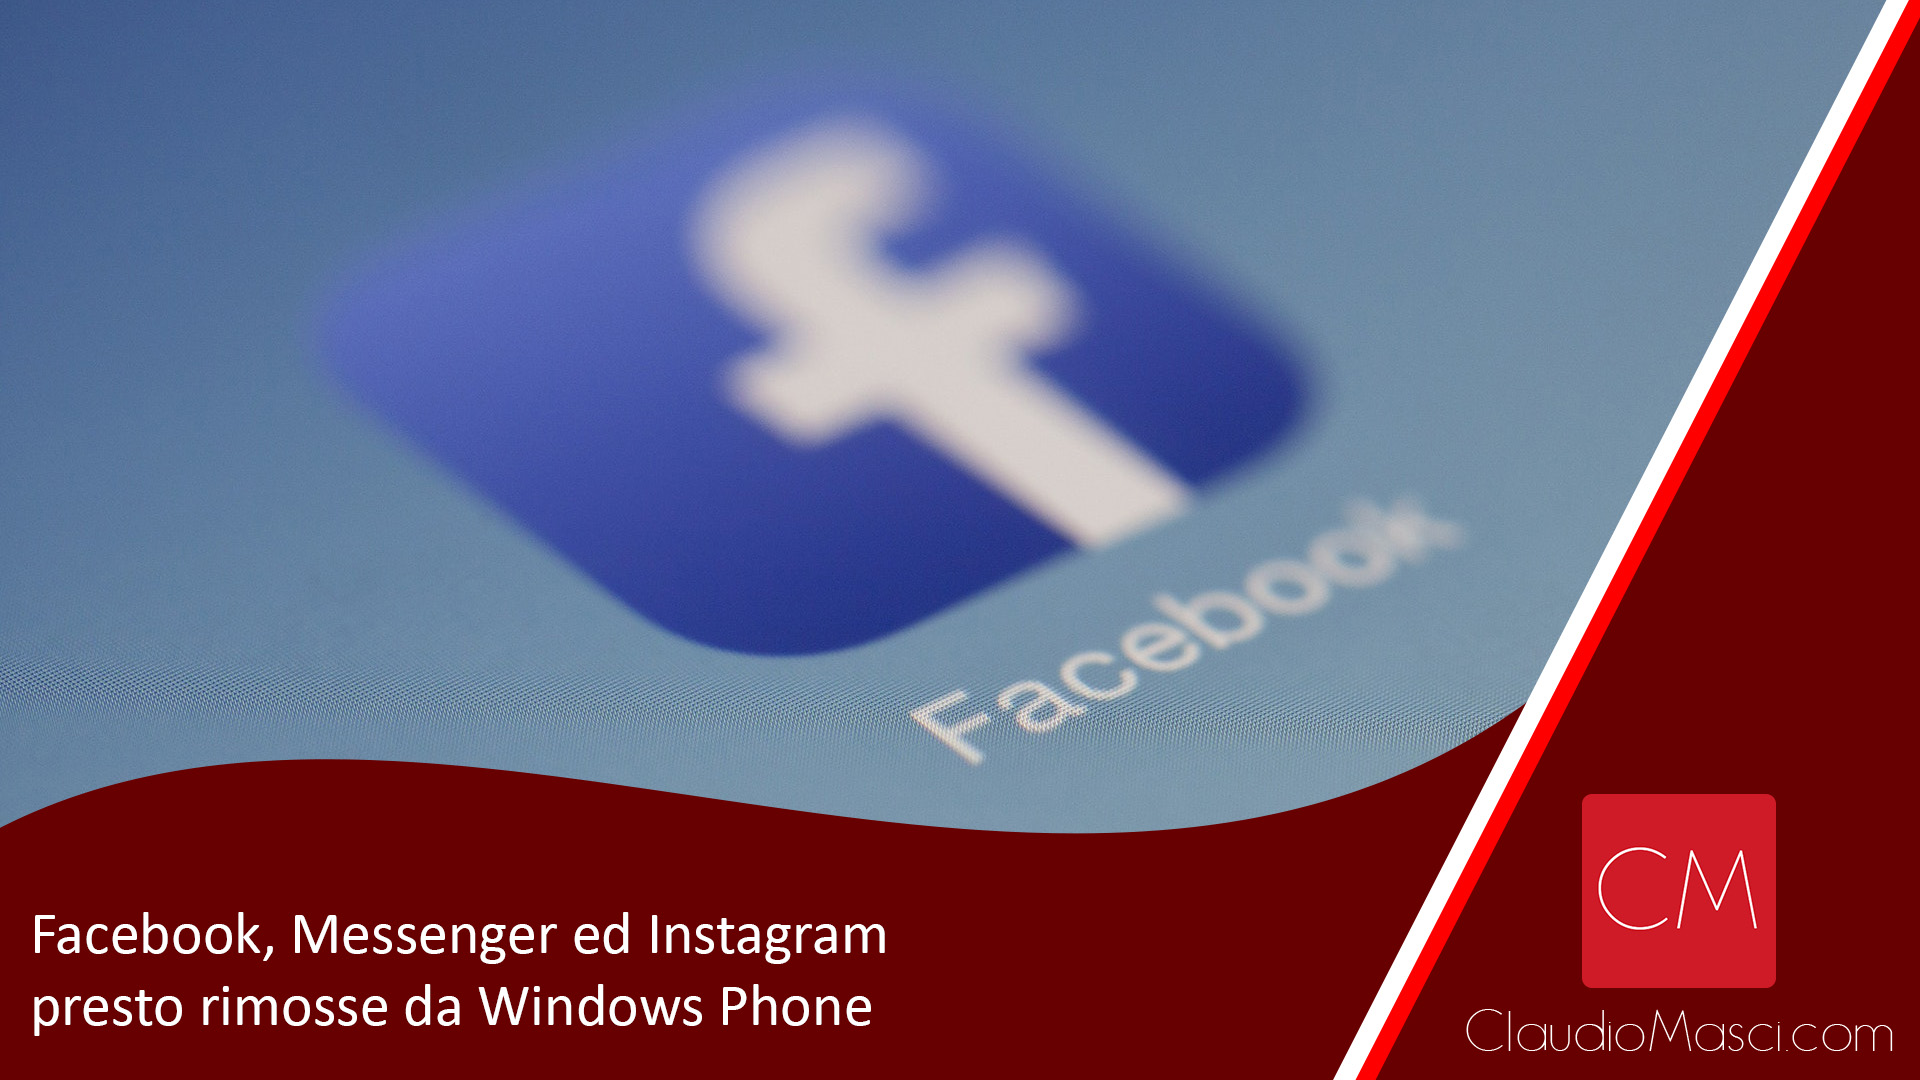 Facebook, Messenger ed Instagram presto rimosse da Windows Phone